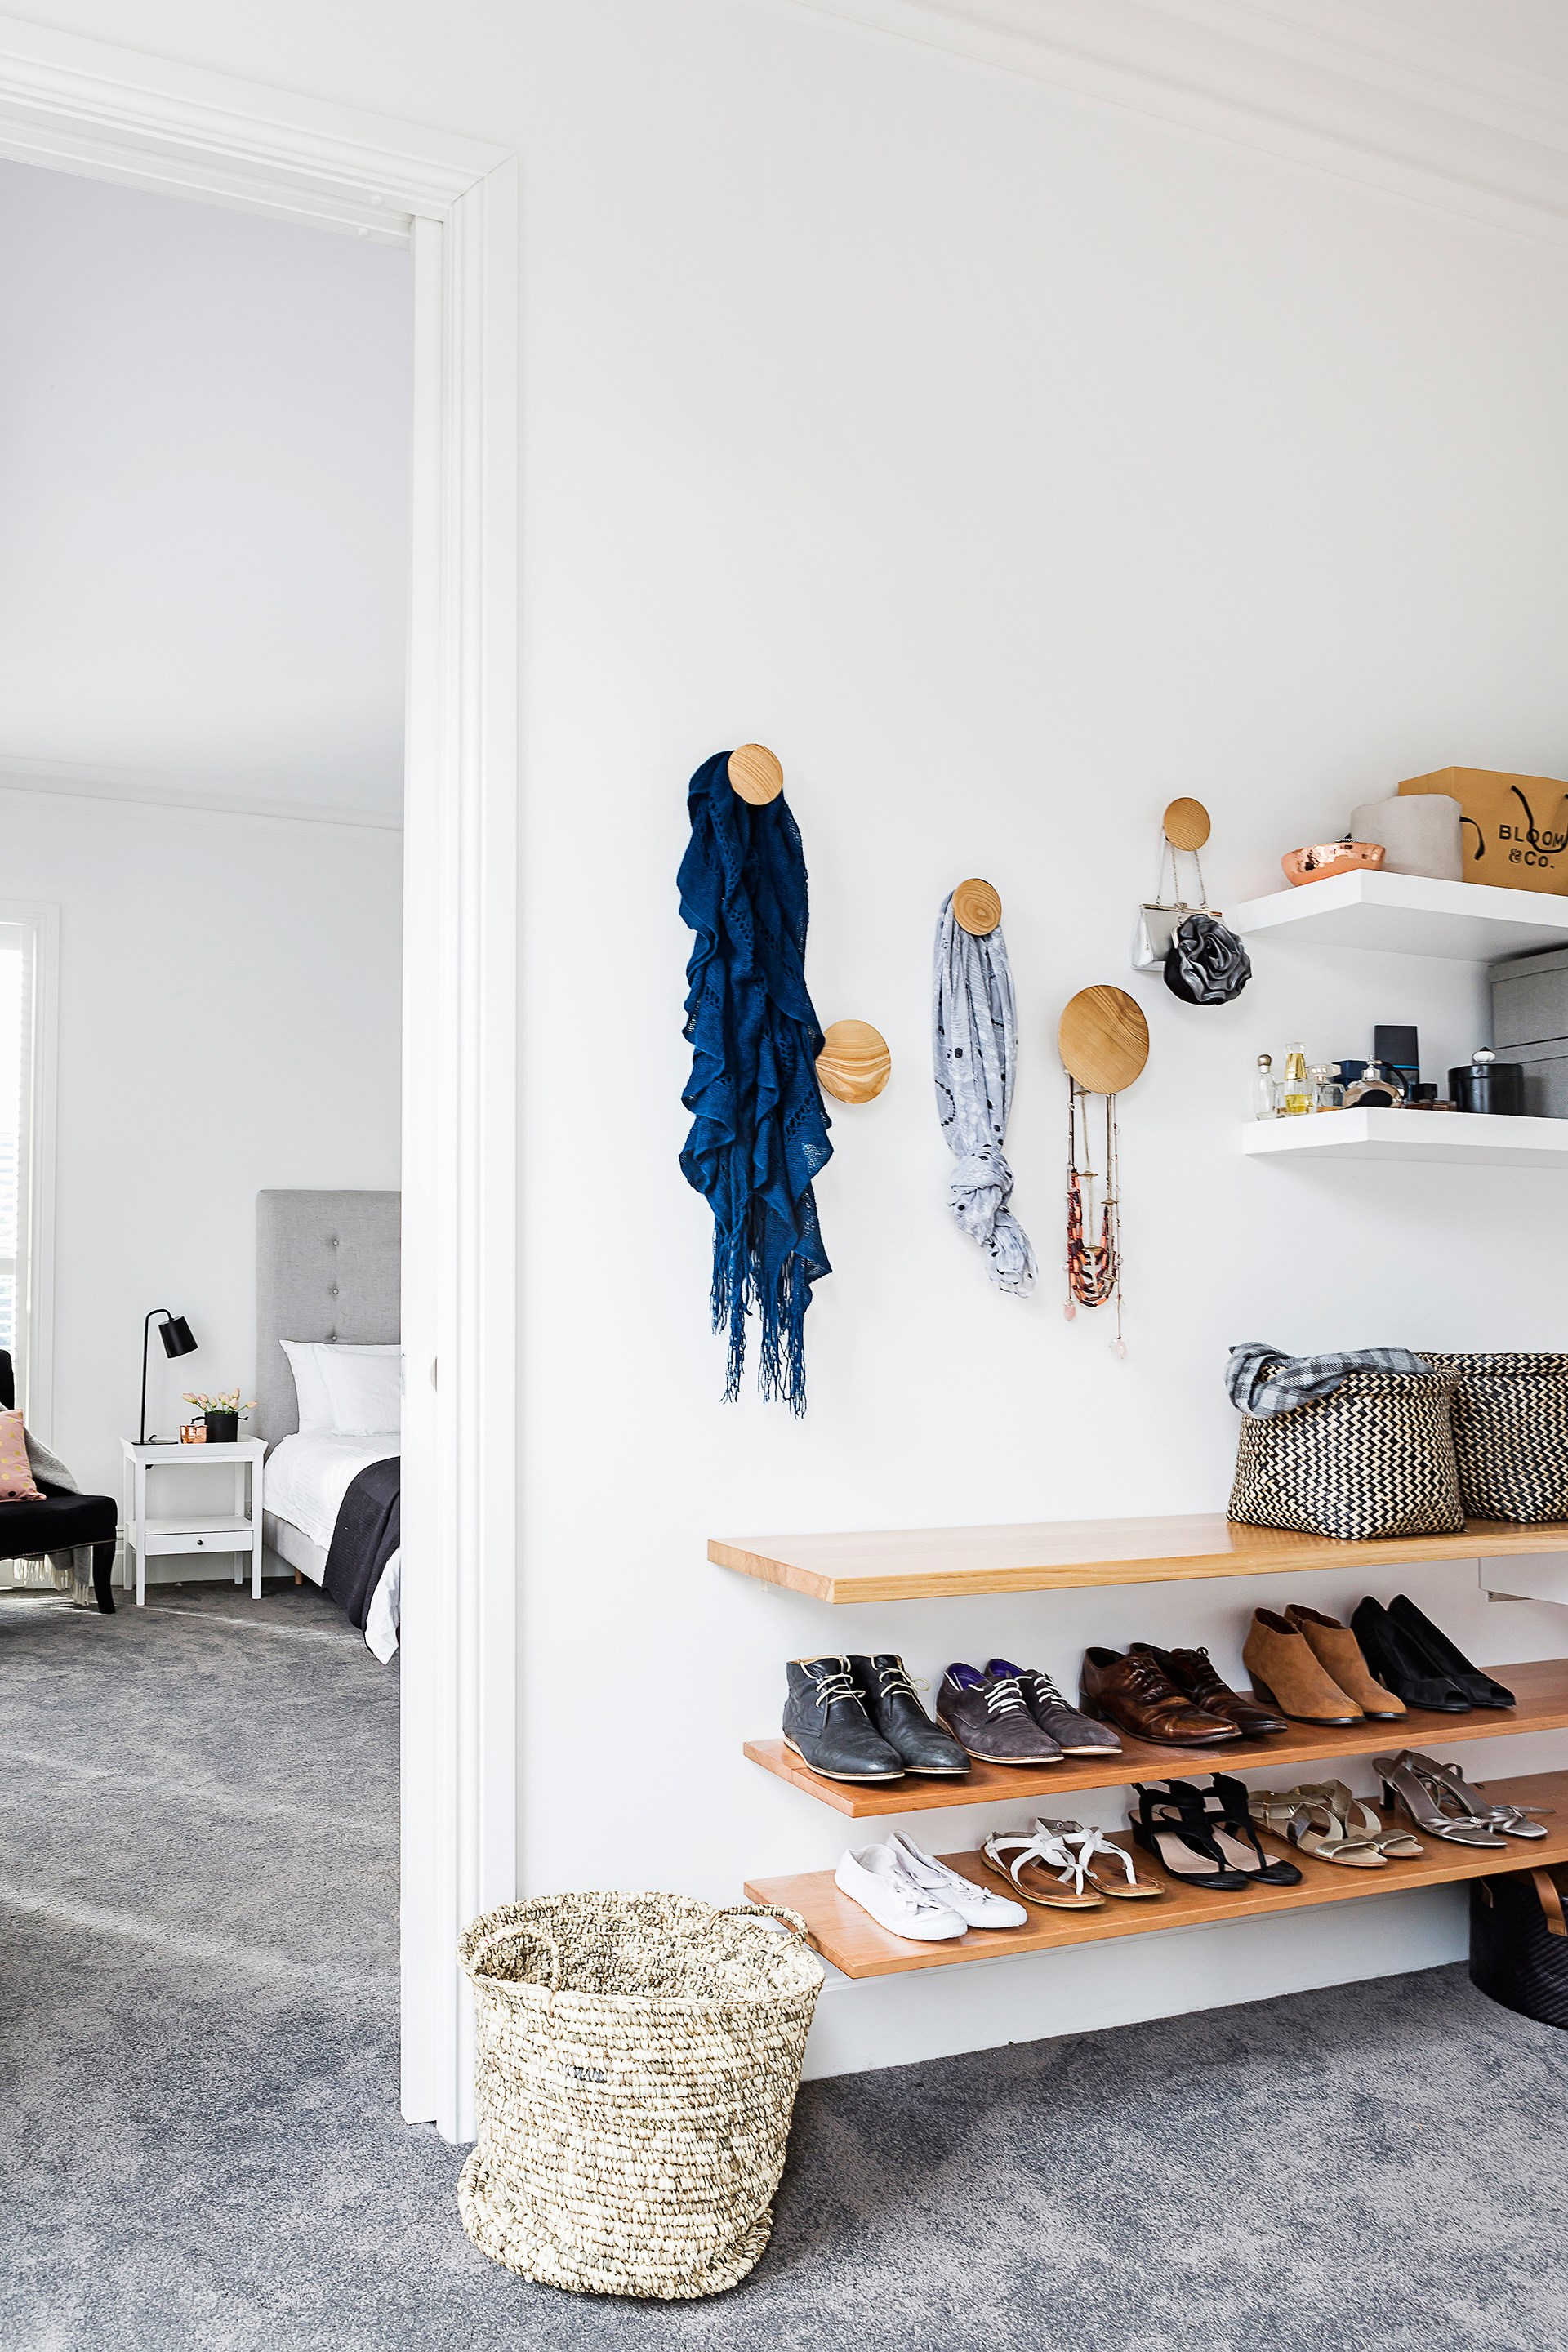 "**Tidy your room**<br><br> Your bedroom should be a haven, [keeping it clean](https://www.homestolove.com.au/bedroom-cleaning-tips-8434|target=""_blank"") and clutter free is essential for helping you to relax. Start small by making your bed. If you're feeling adventurous, [organise your wardrobe](https://www.homestolove.com.au/how-to-organise-your-wardrobe-6984